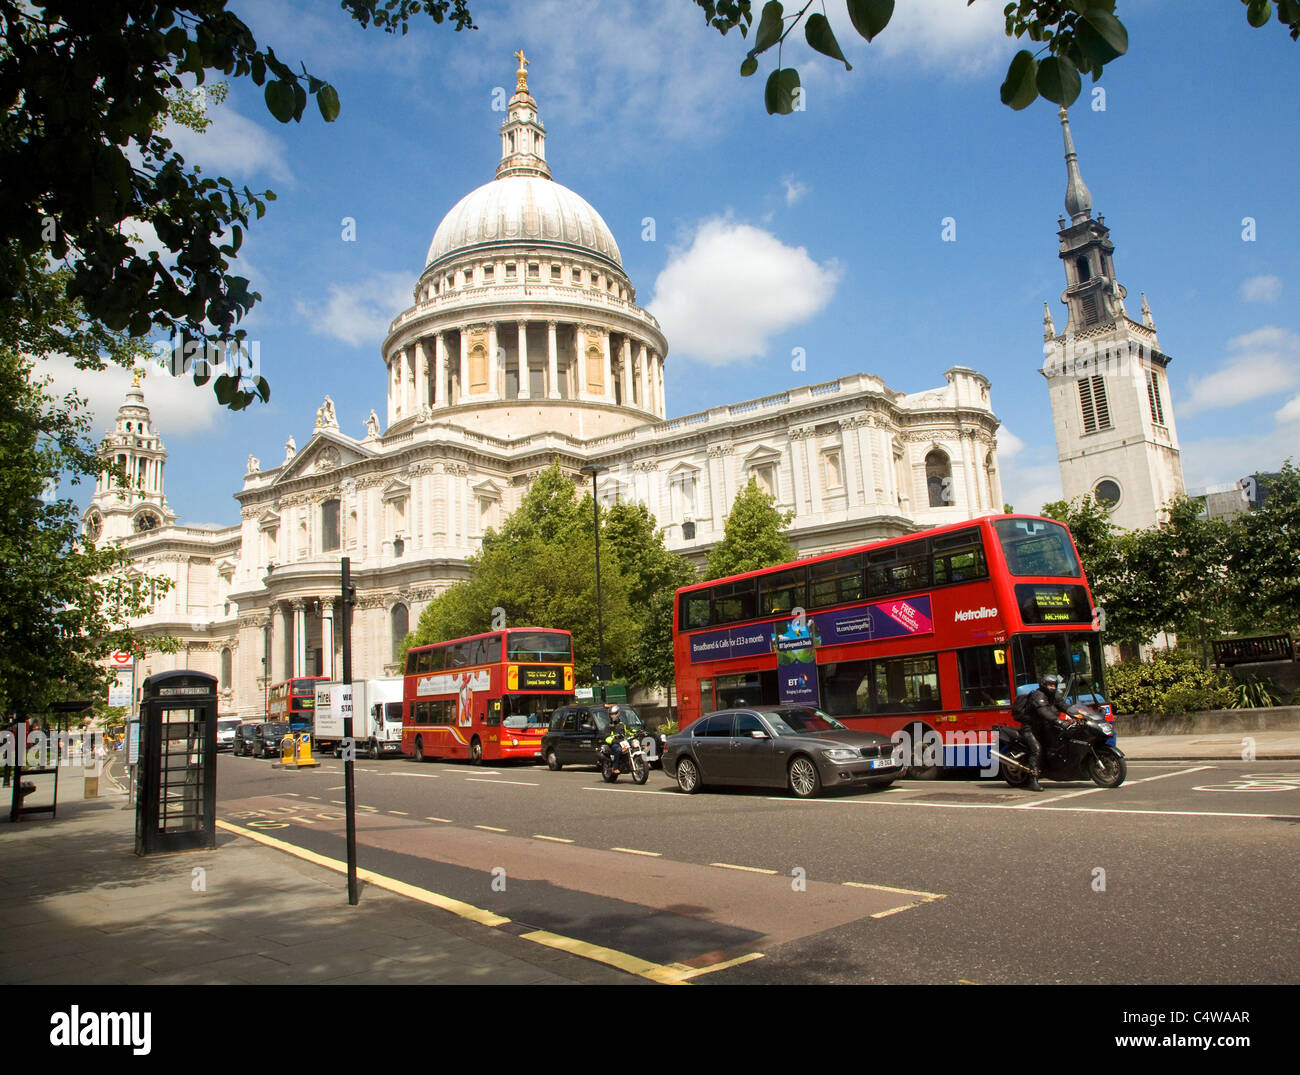 View of St Paul's cathedral Cannon Street, London - Stock Image